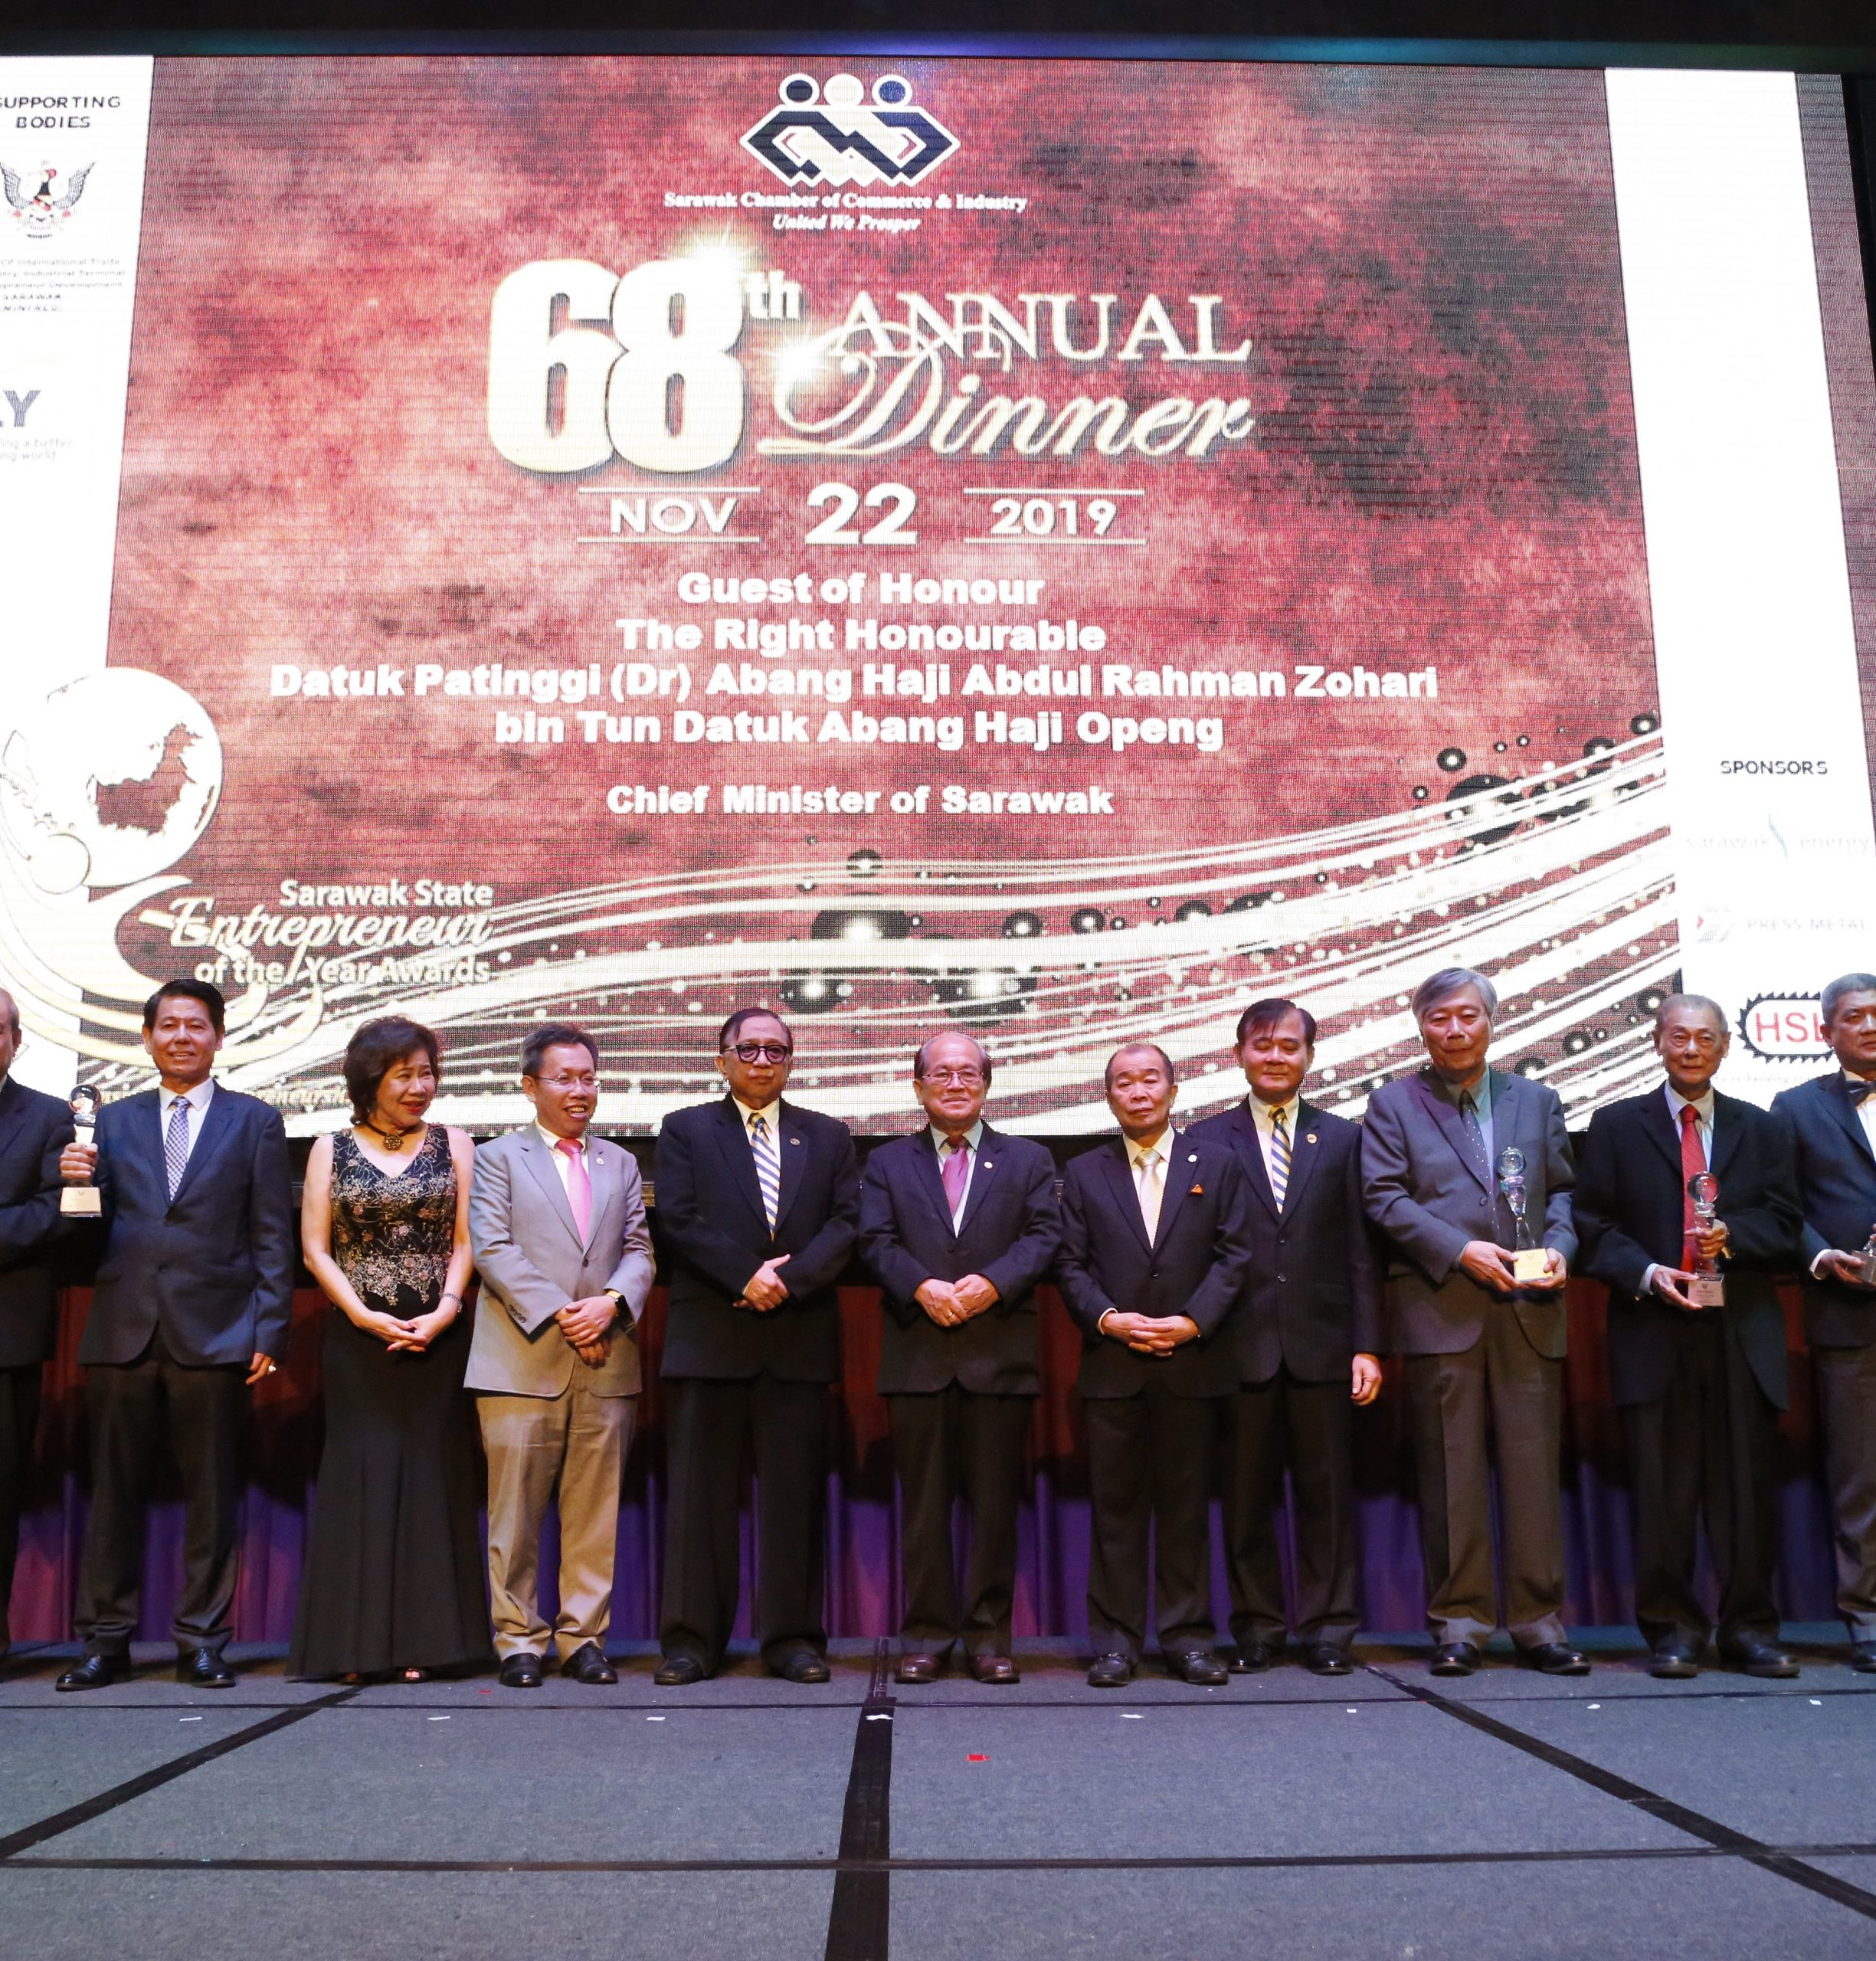 EOYS 2019: Celebrating the best of Corporate Sarawak